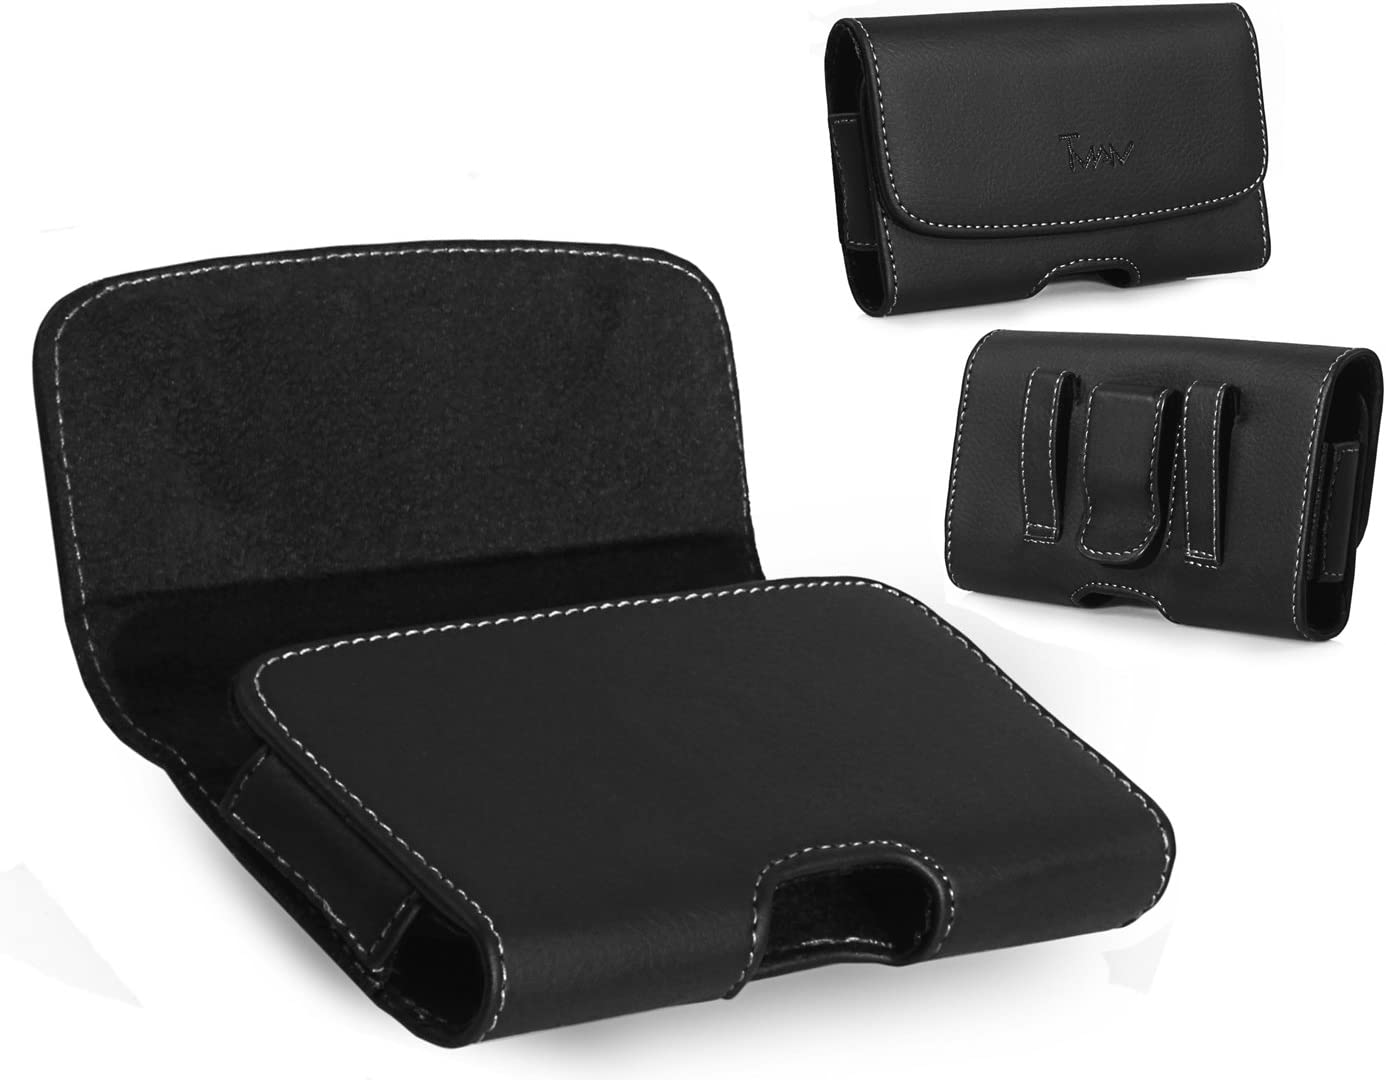 Leather Horizontal Belt Clip Case Pouch Holster for LG Revere 3 VN170 Revere 2 VN150S Envoy II UN160 [PERFECT FITS WITH WATERPROOF ON IT ]